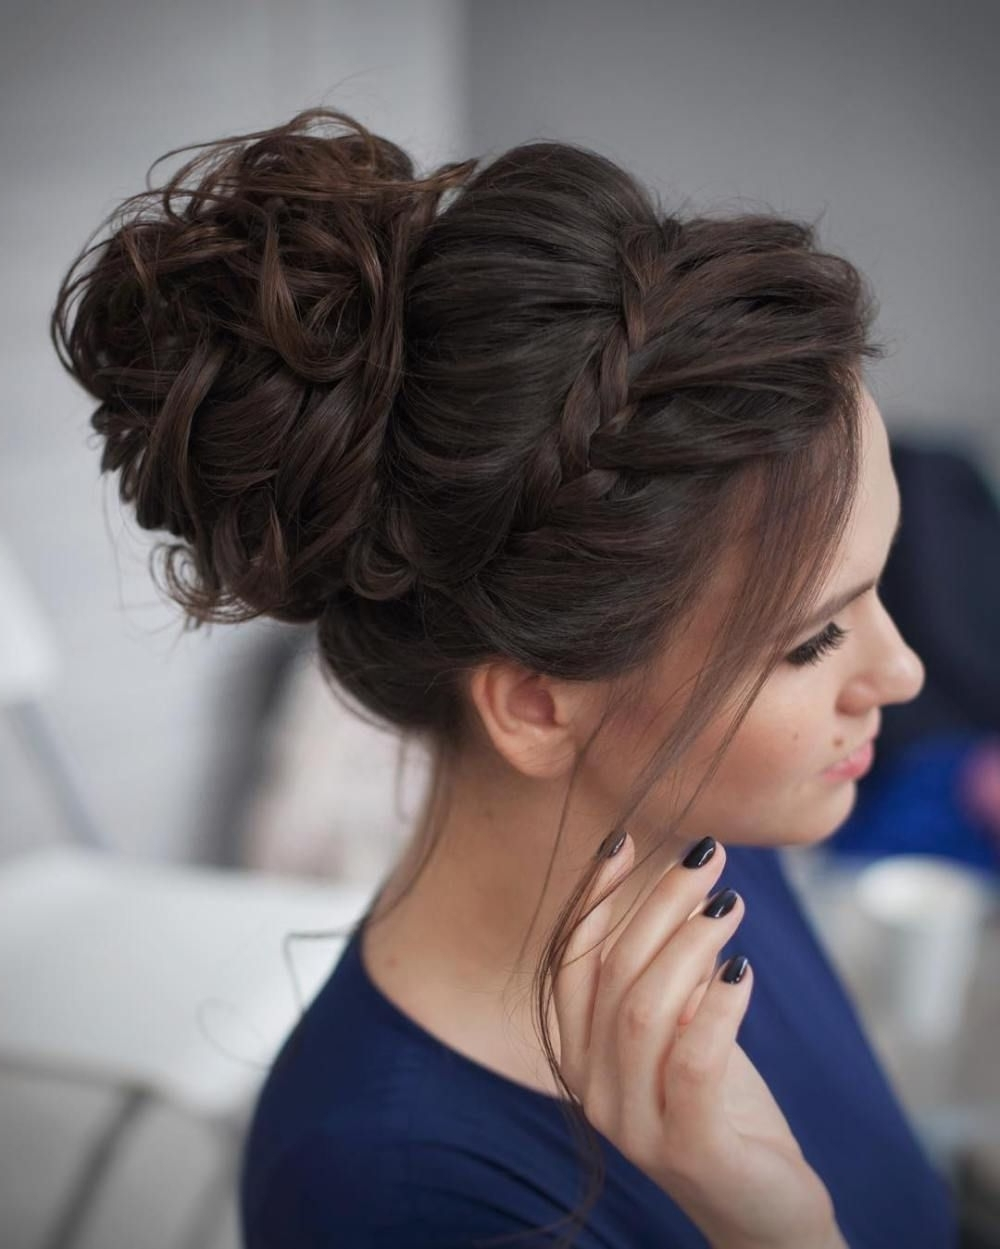 40 Most Delightful Prom Updos For Long Hair In 2018 | Updo, Prom And With Pretty Updo Hairstyles For Long Hair (View 2 of 15)